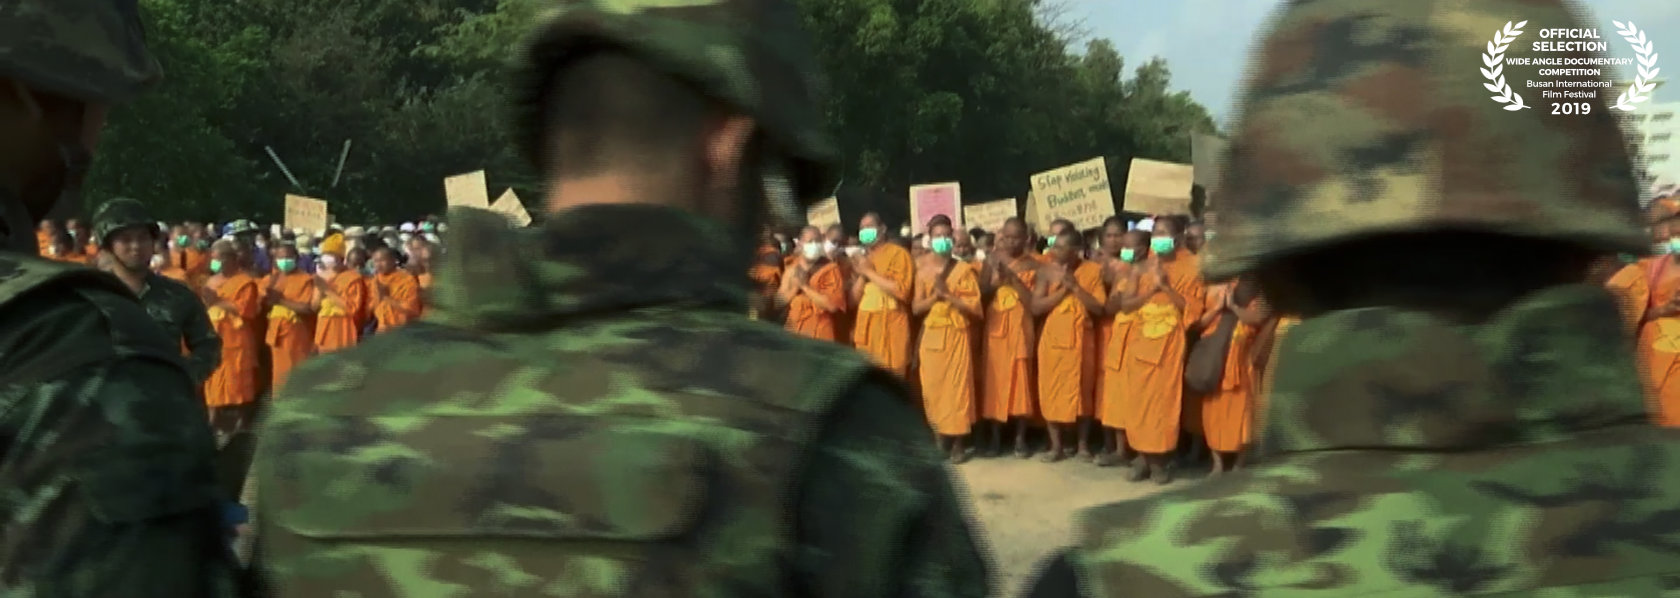 Buddhist monks holding placards in front of military - Come and See - THIS Buddhist Film Festival